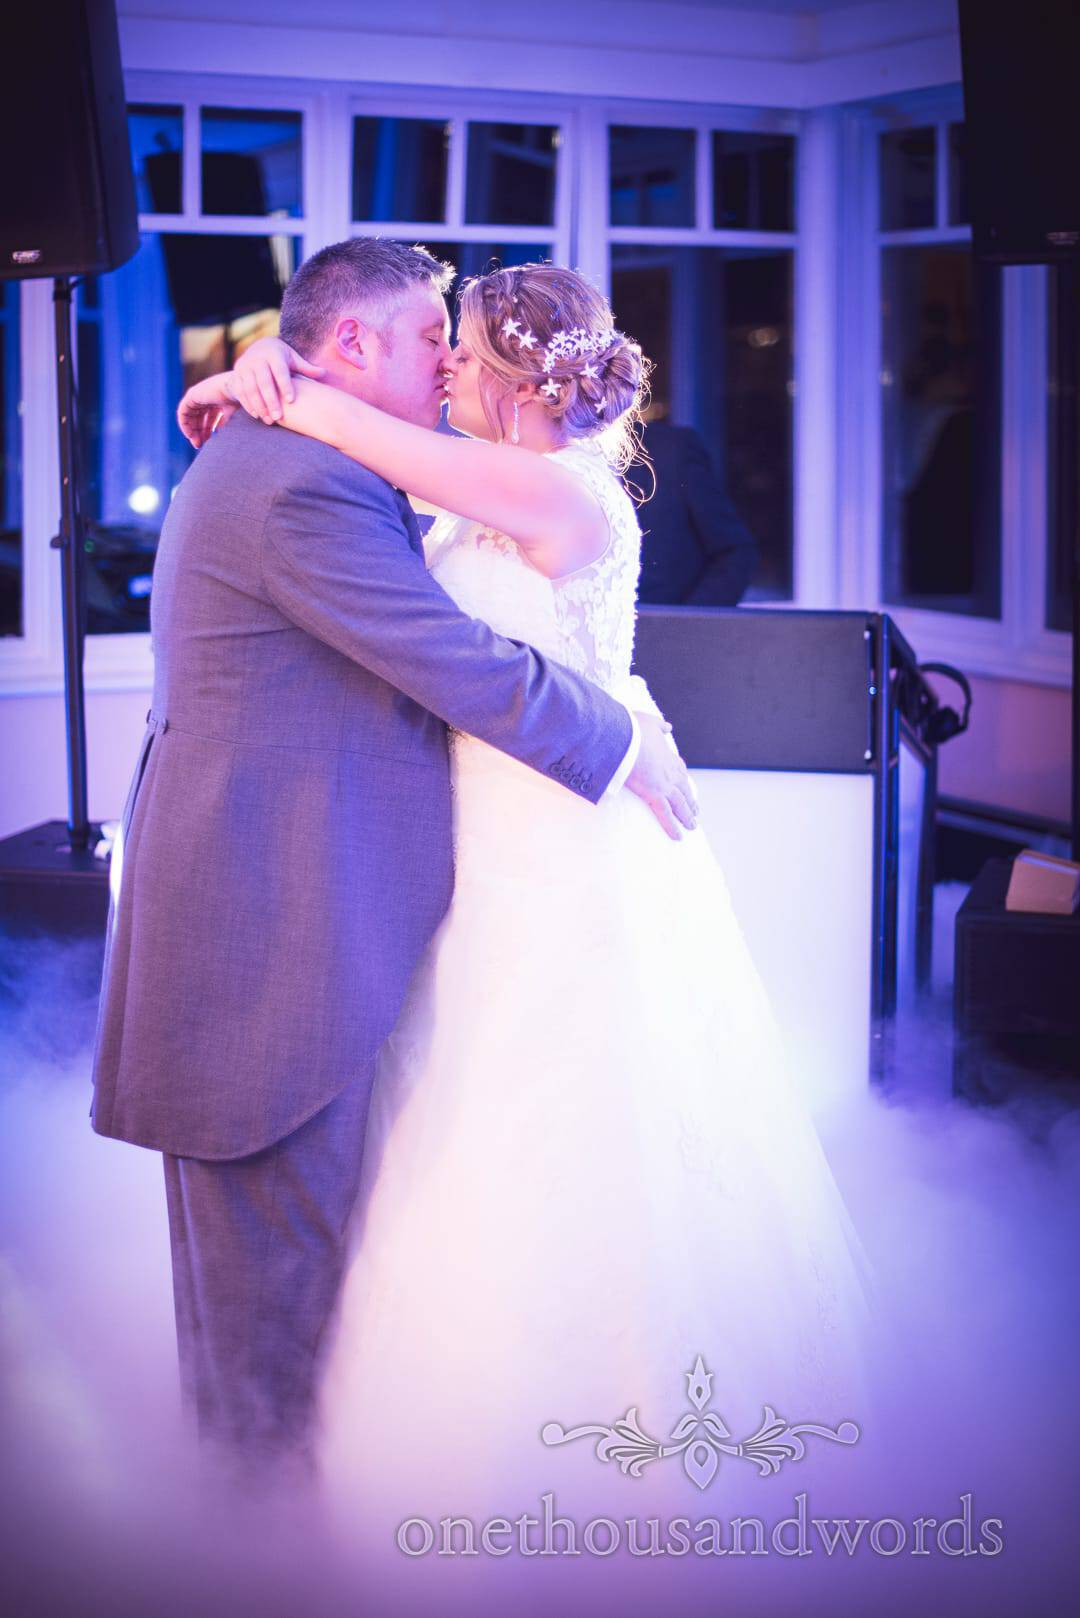 Newlyweds take their first dance on smokey dance floor at Swanage Hotel wedding photographs